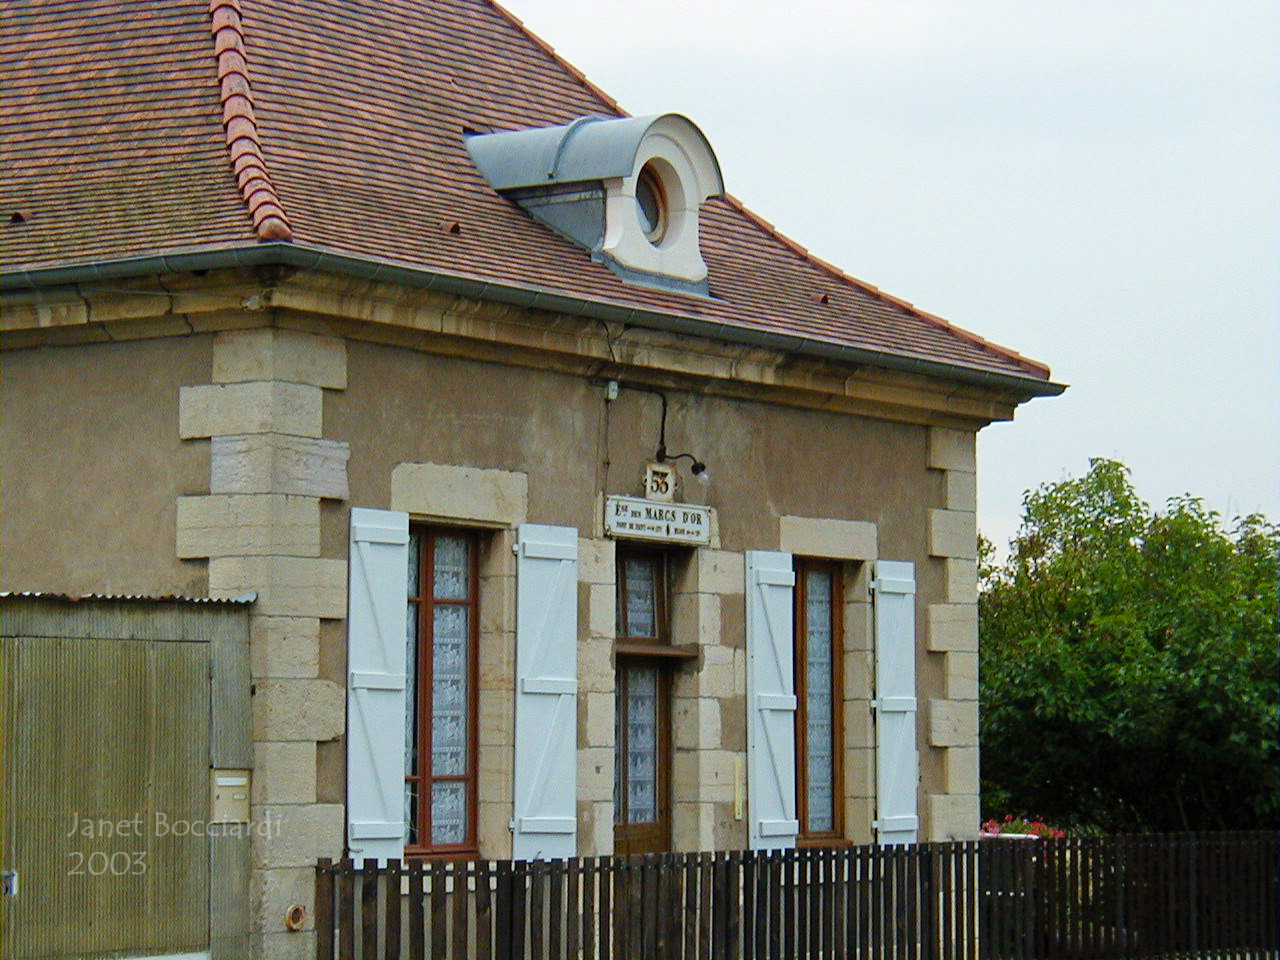 Lock House No. 53, Burgundy Canal, France